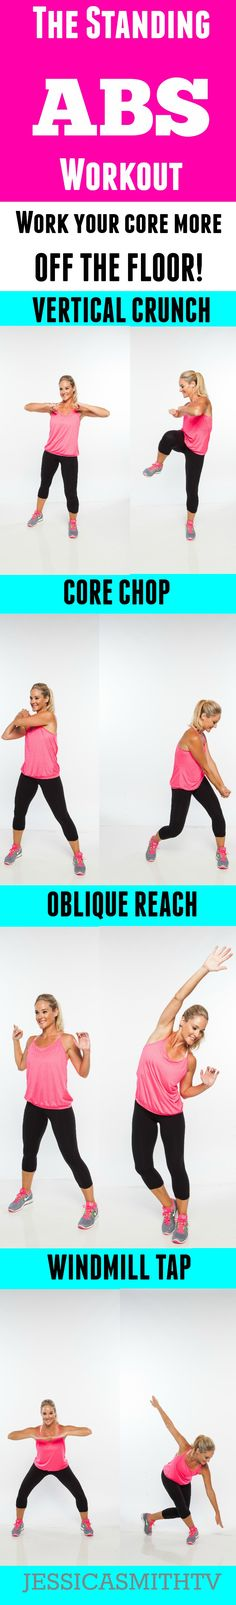 Forget crunches - these moves are much more effective!